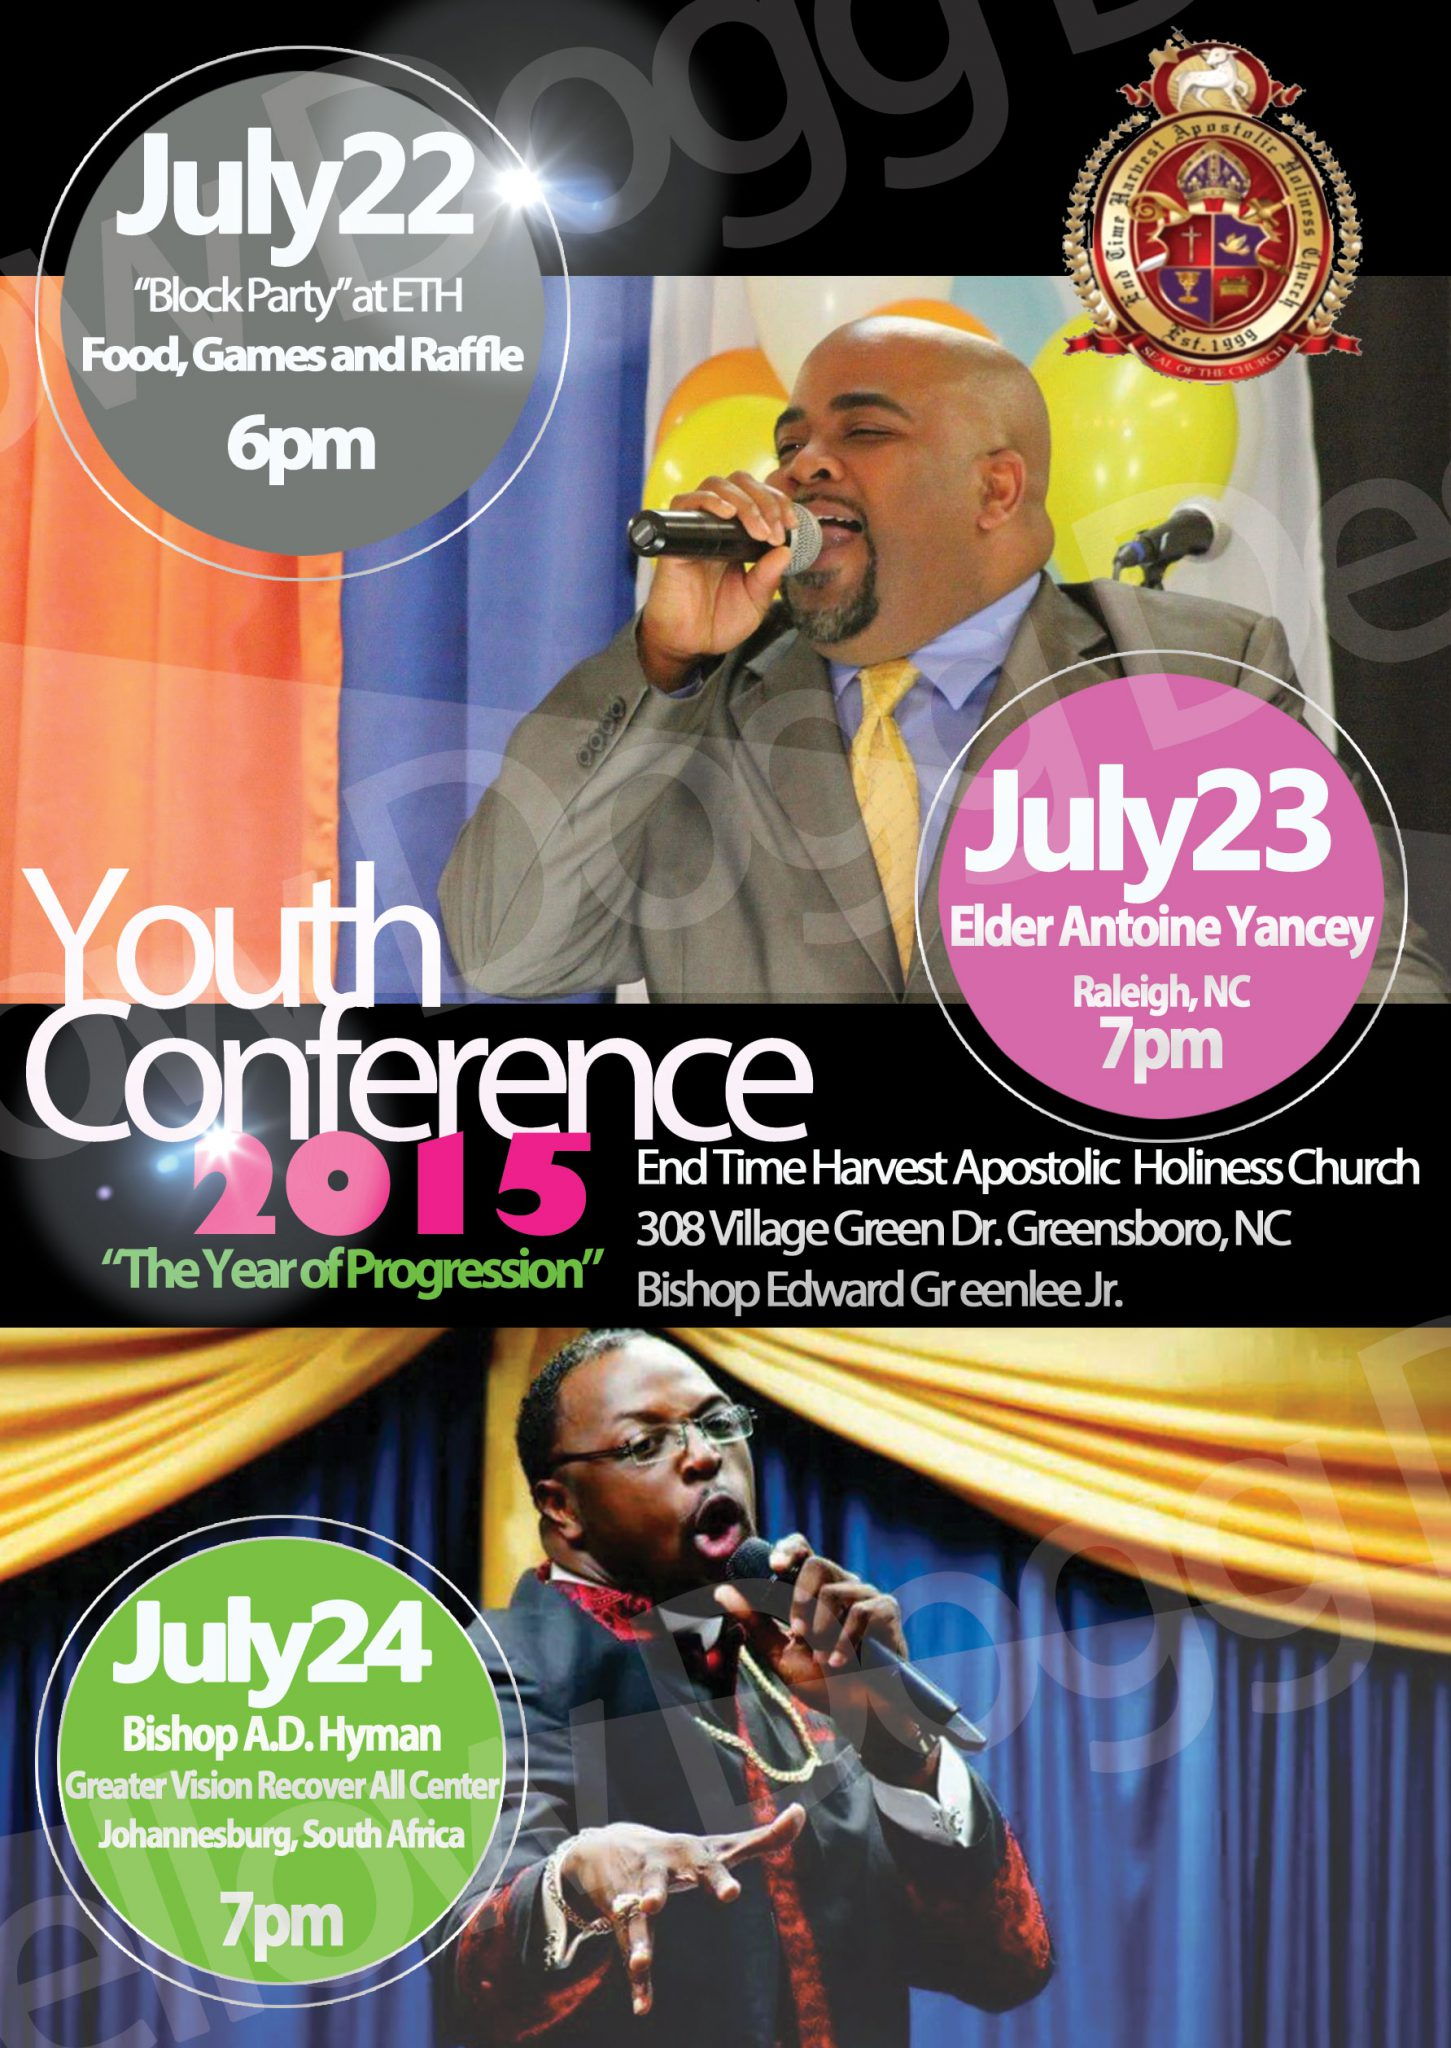 Youth Conference Promotional Flyer | Yellow Dogg Designs